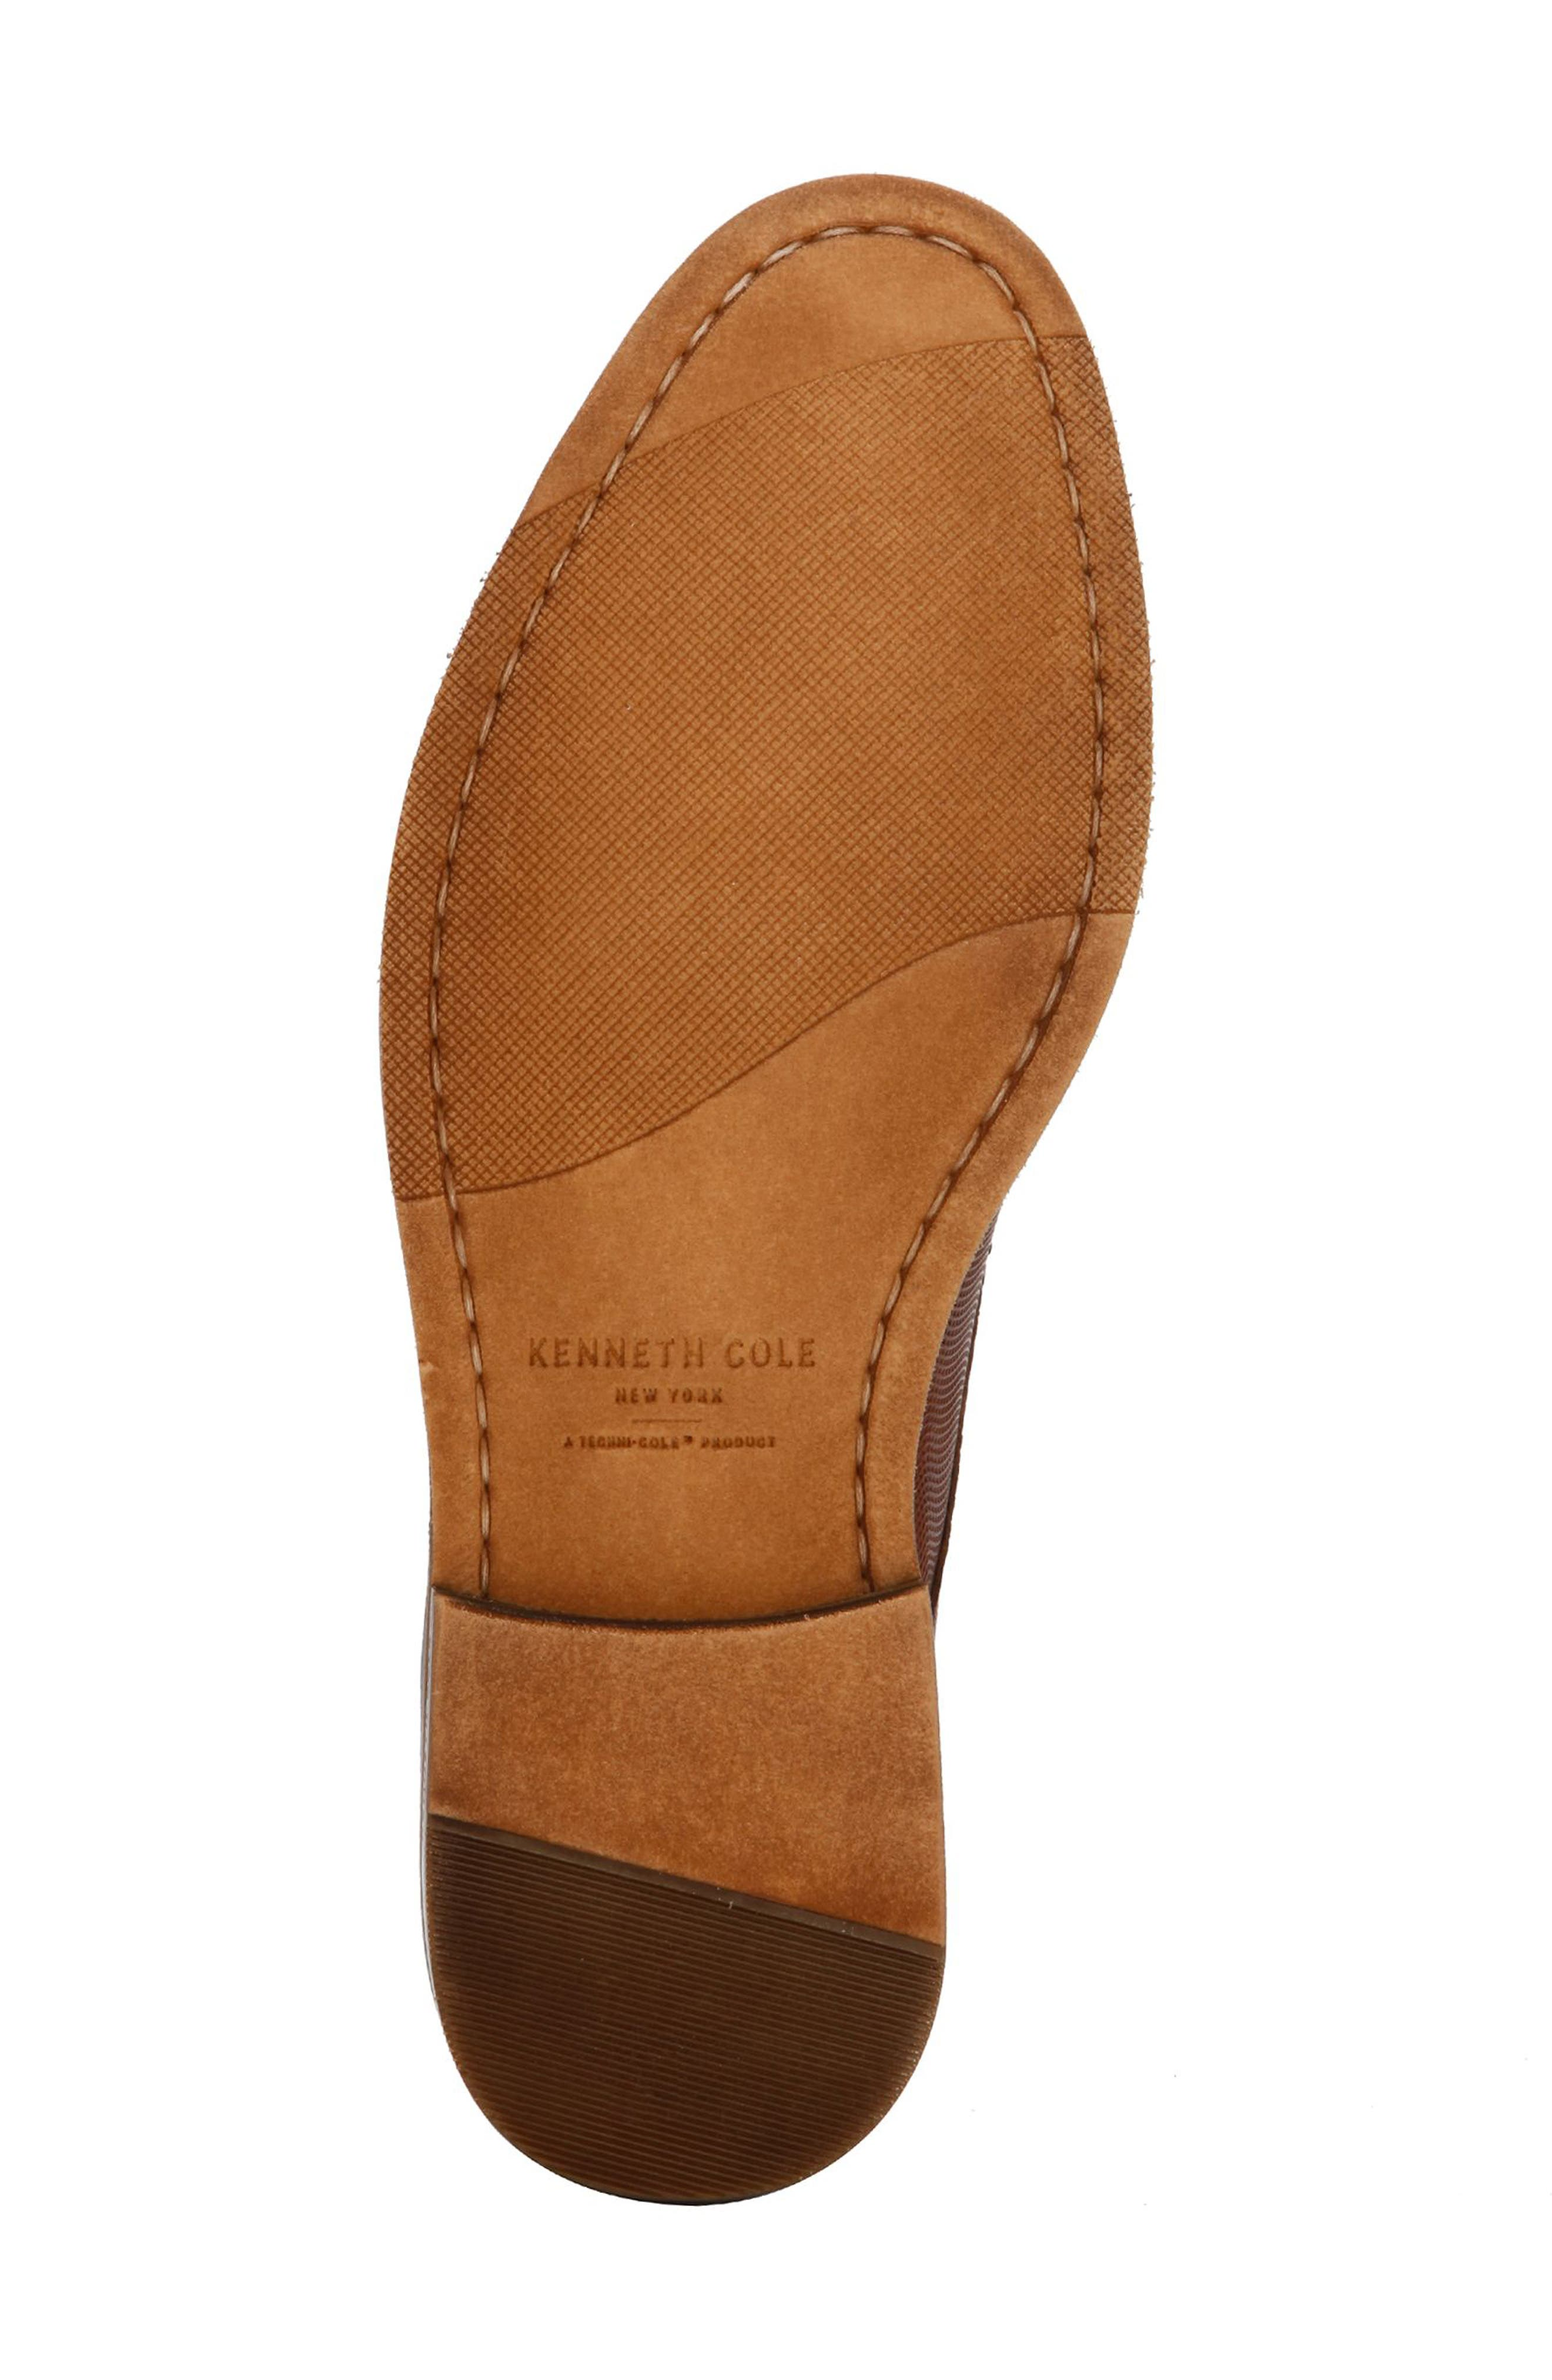 KENNETH COLE NEW YORK, Dance Textured Plain Toe Derby, Alternate thumbnail 4, color, COGNAC EMBOSSED LEATHER